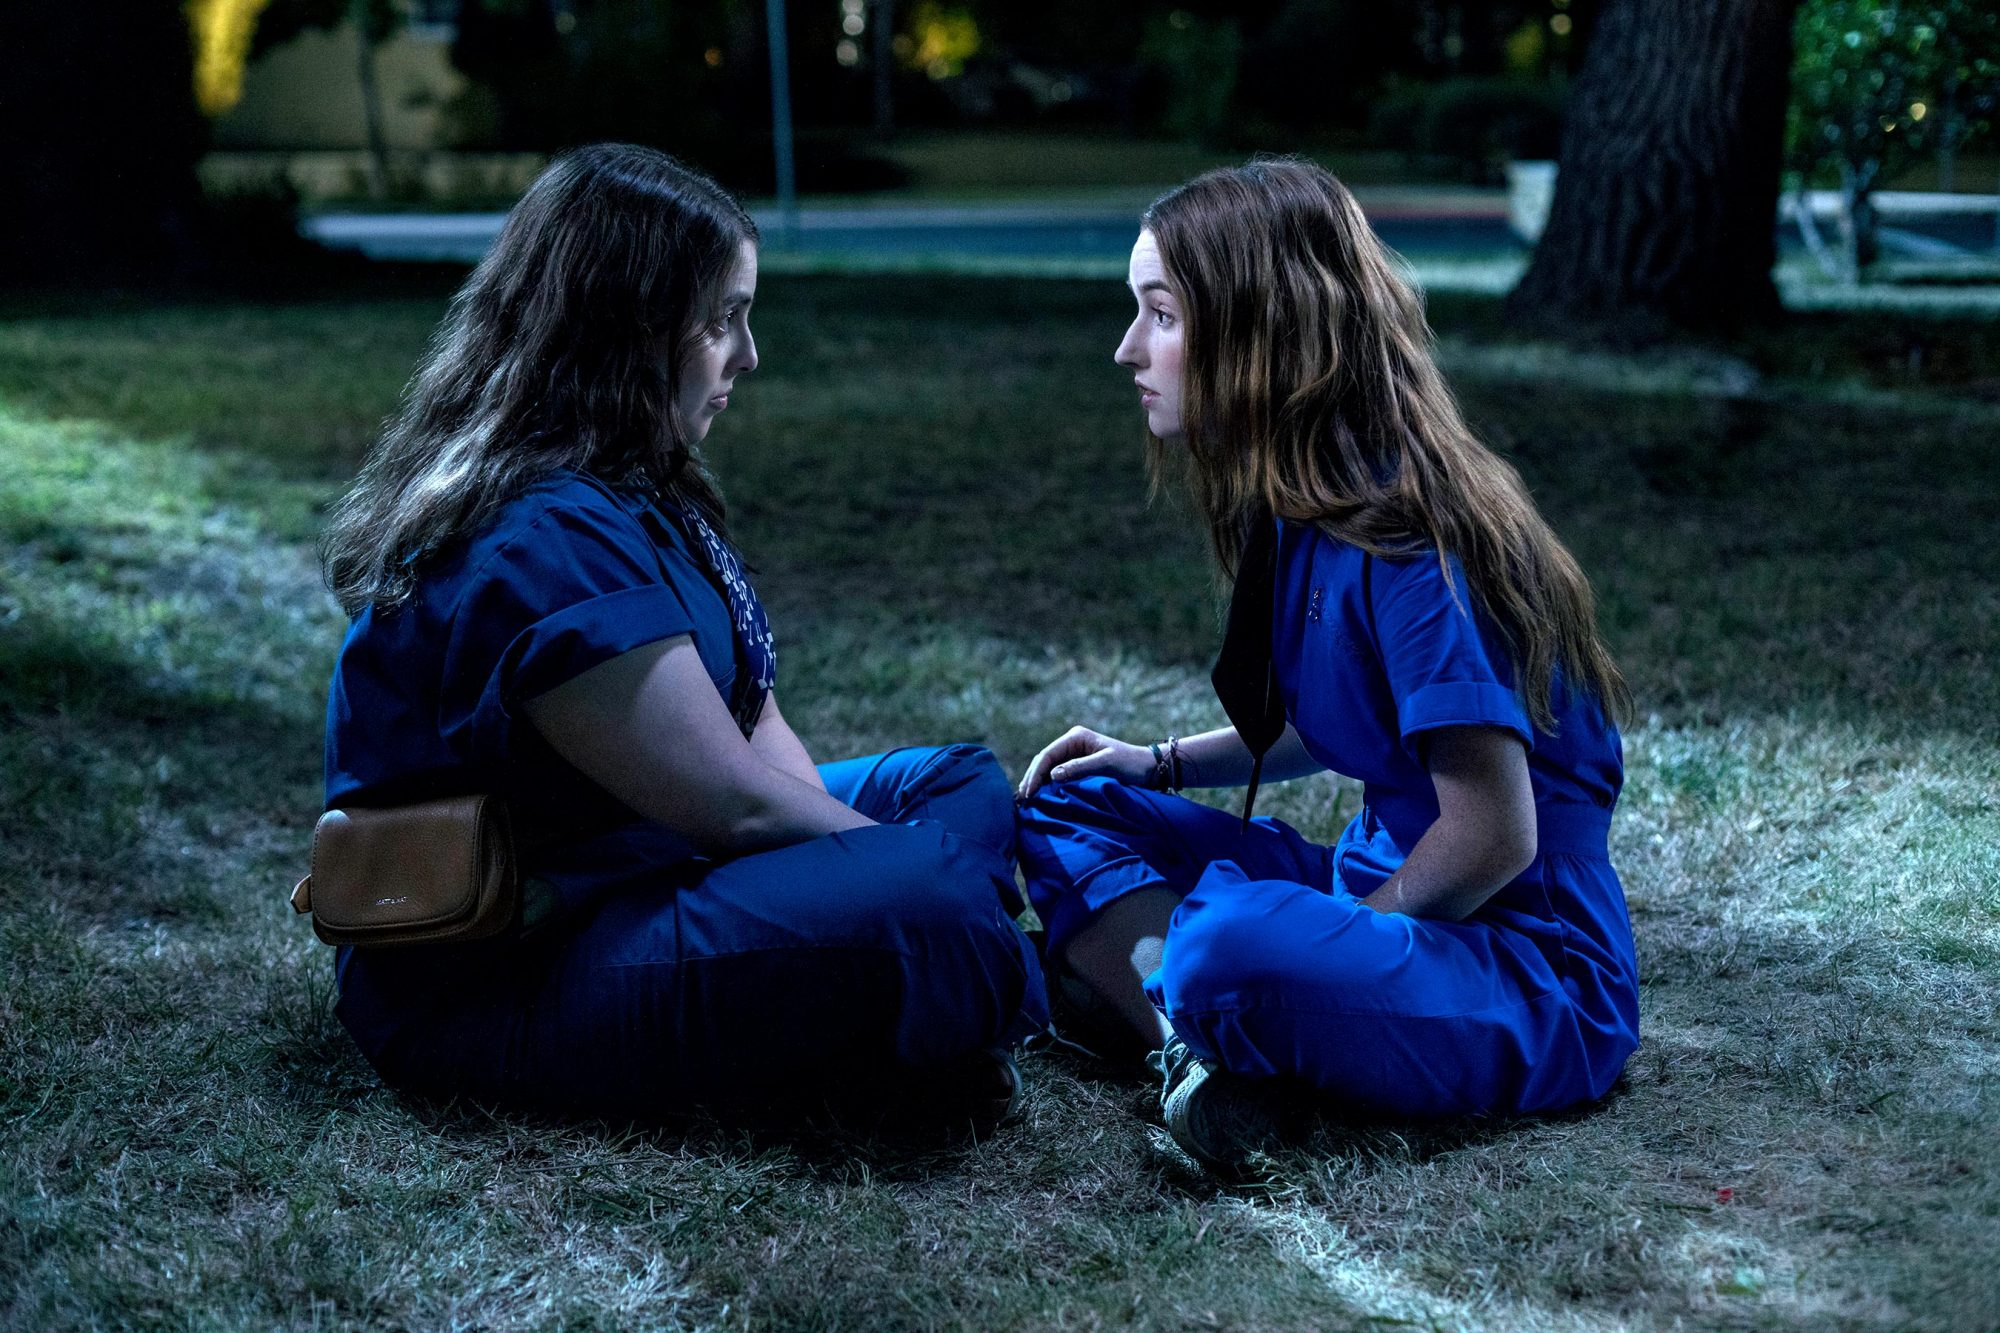 Amy and Molly (Booksmart, 2019)